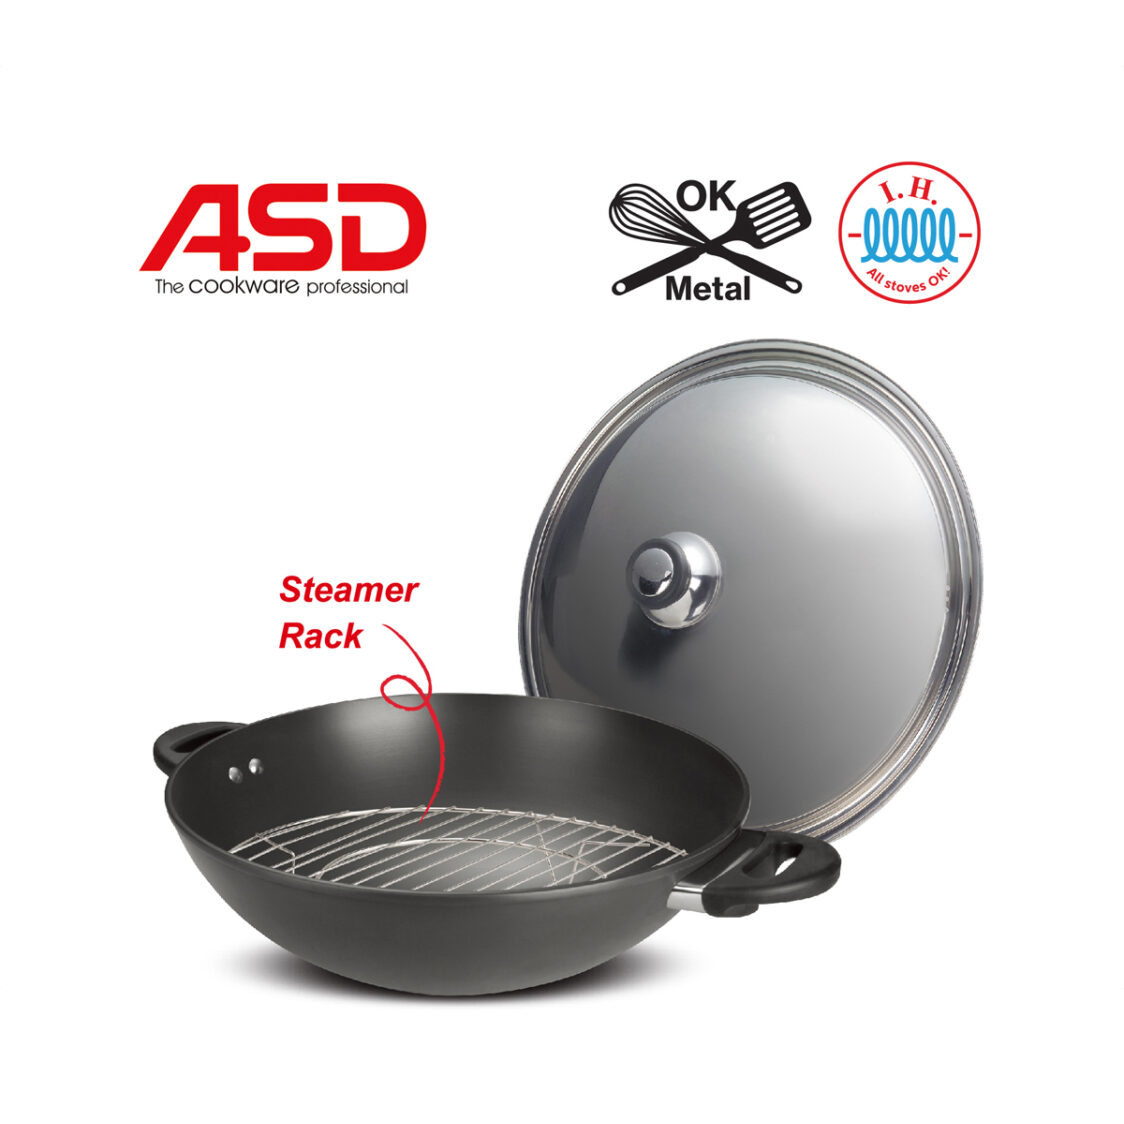 ASD 40cm Hard Anodised Induction Compatible Wok With Stainless Steel Cover HP2540IH-N